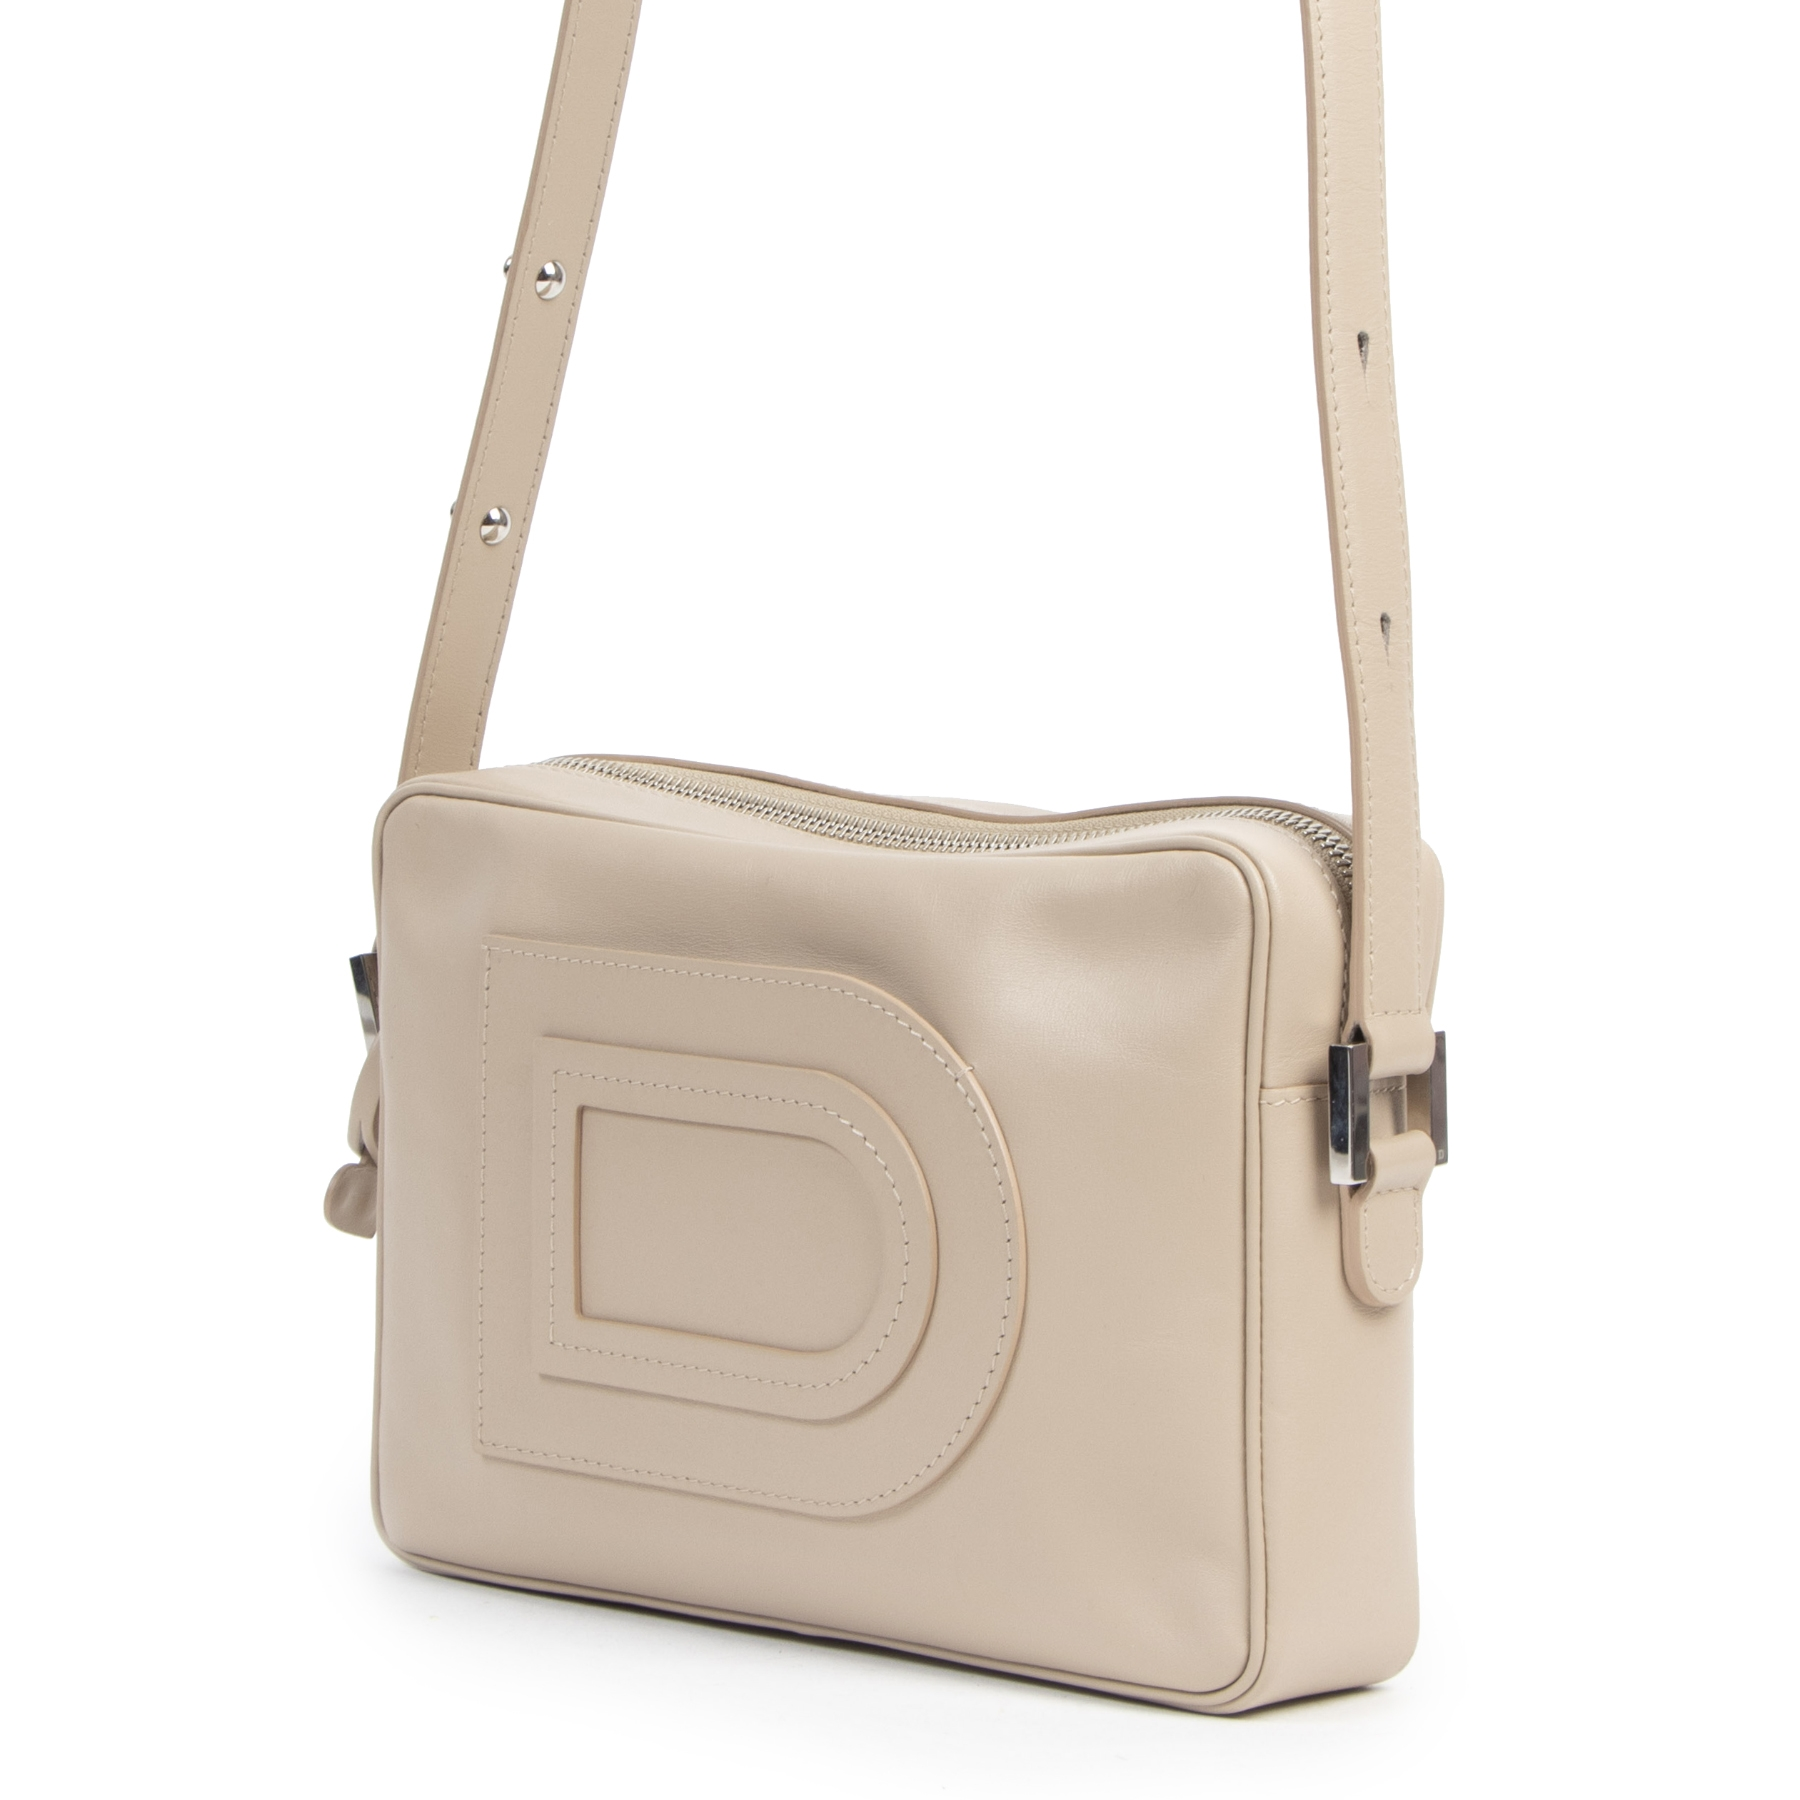 Authentic second-hand vintage Delvaux Louise Cross Over Dusty Pink Camera Bag buy online webshop LabelLOV